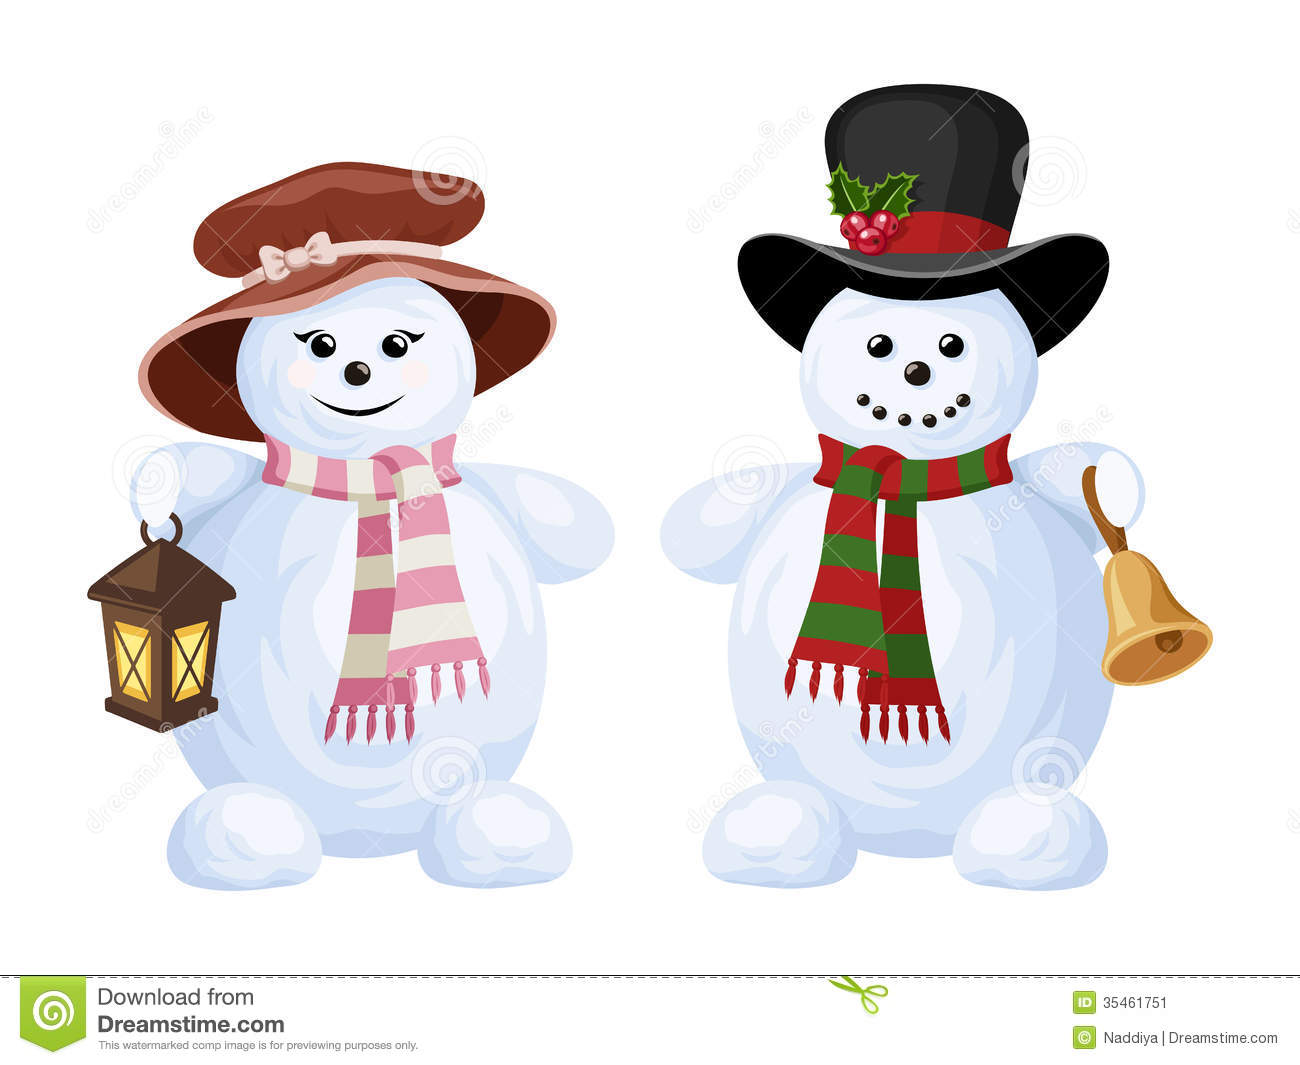 Two Christmas Snowmen  A Boy And A Girl  Stock Image   Image  35461751